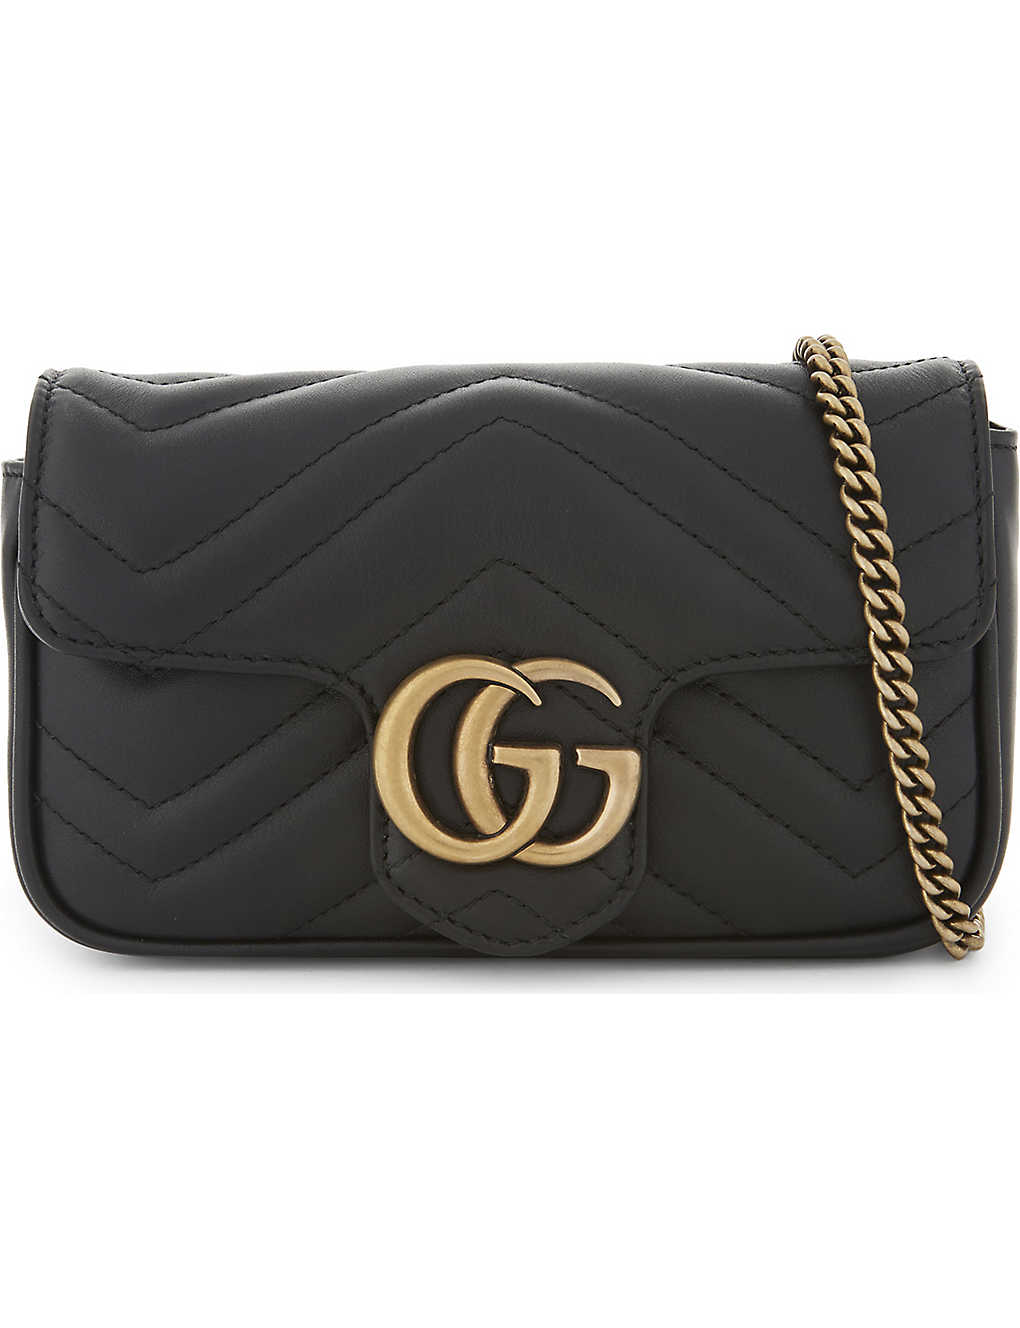 8d5de2661072 GUCCI - Marmont Super Mini leather shoulder bag | Selfridges.com